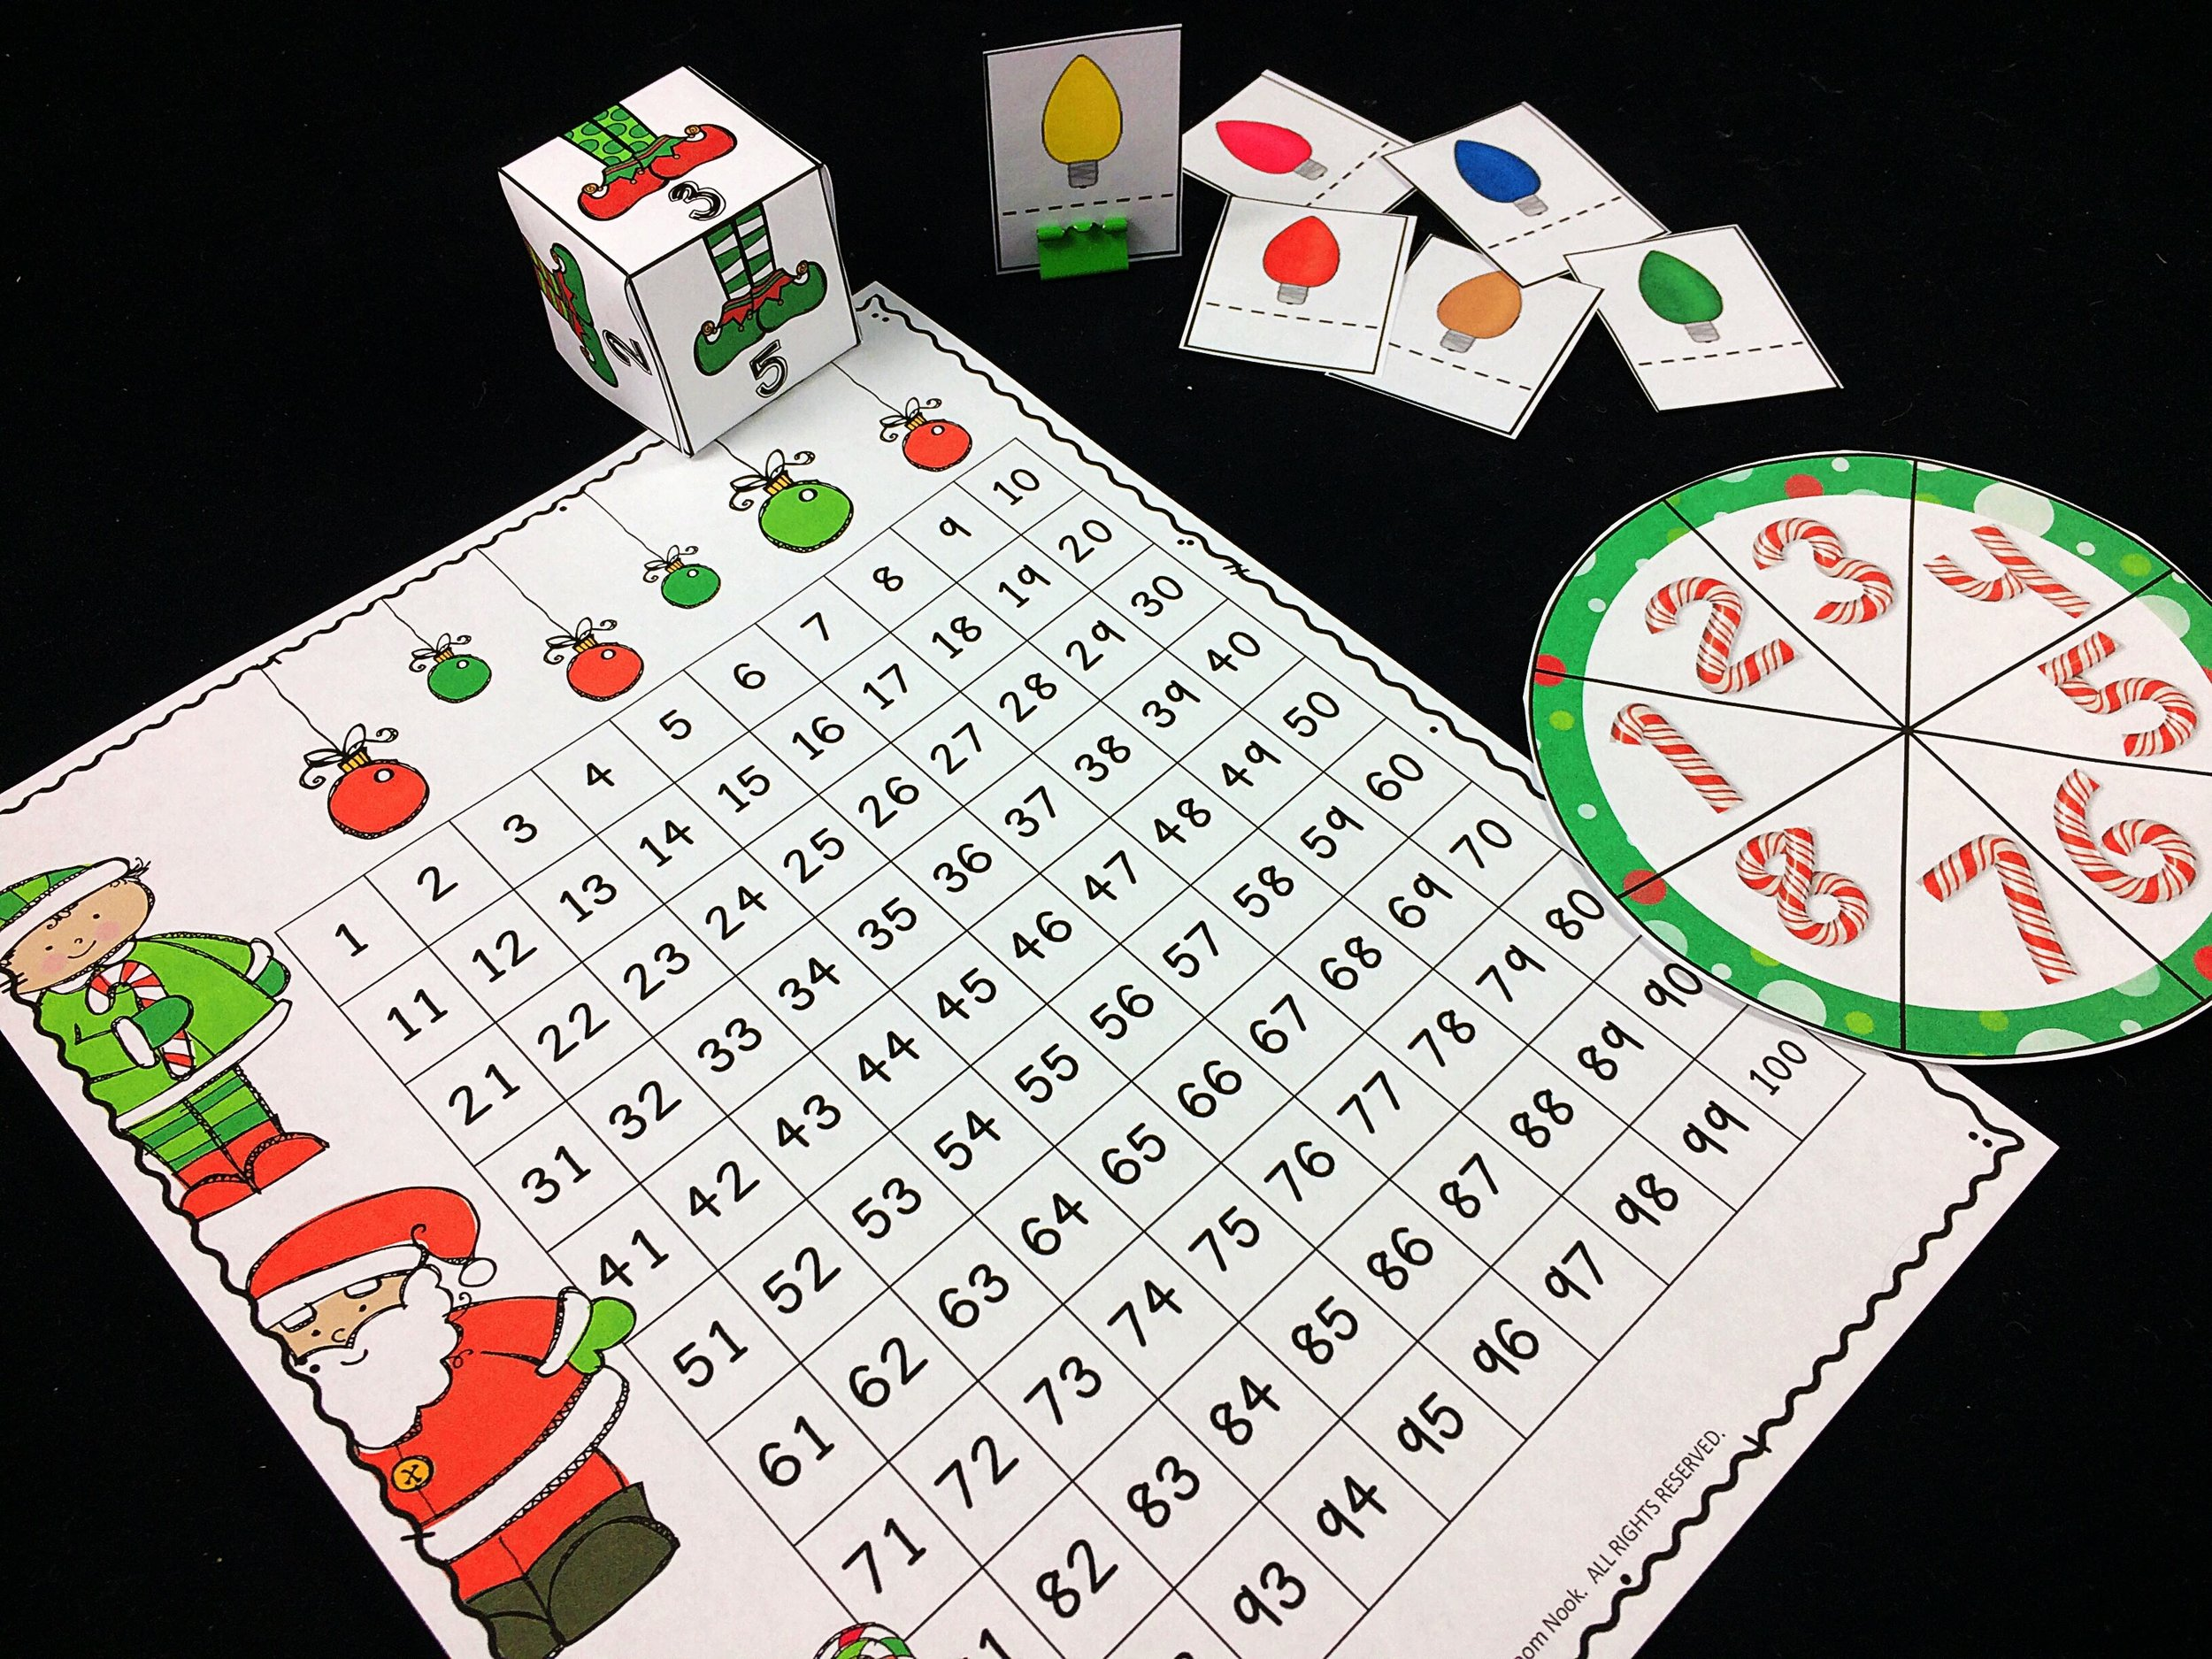 Easily swap out your regular dice, spinners, hundreds charts...etc.. for ones with a little holiday theme. The impact of these minor changes will be MUCH greater than then effort it takes to make them!